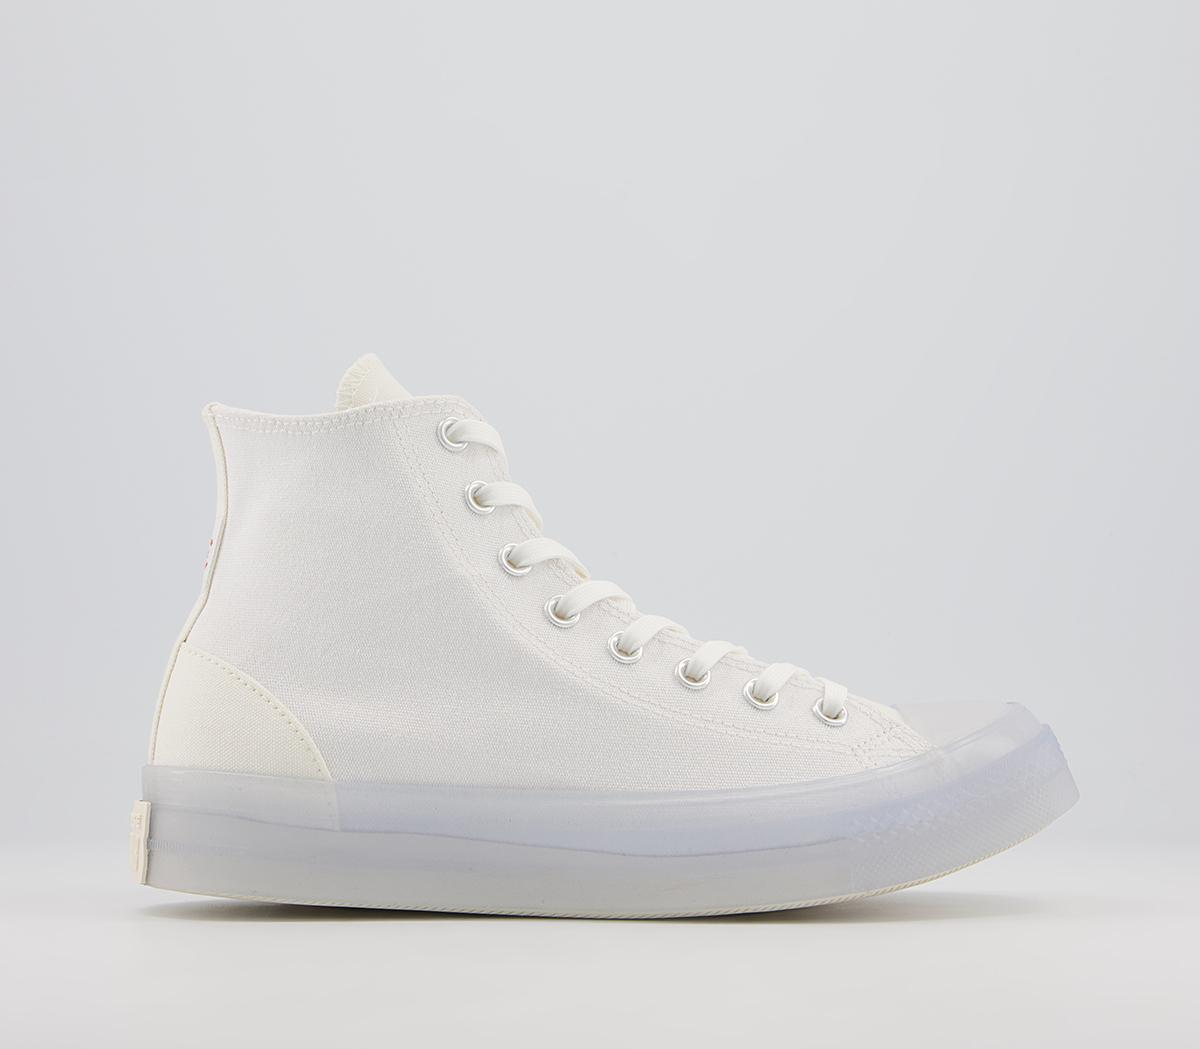 Chuck Taylor All Star Cx Trainers